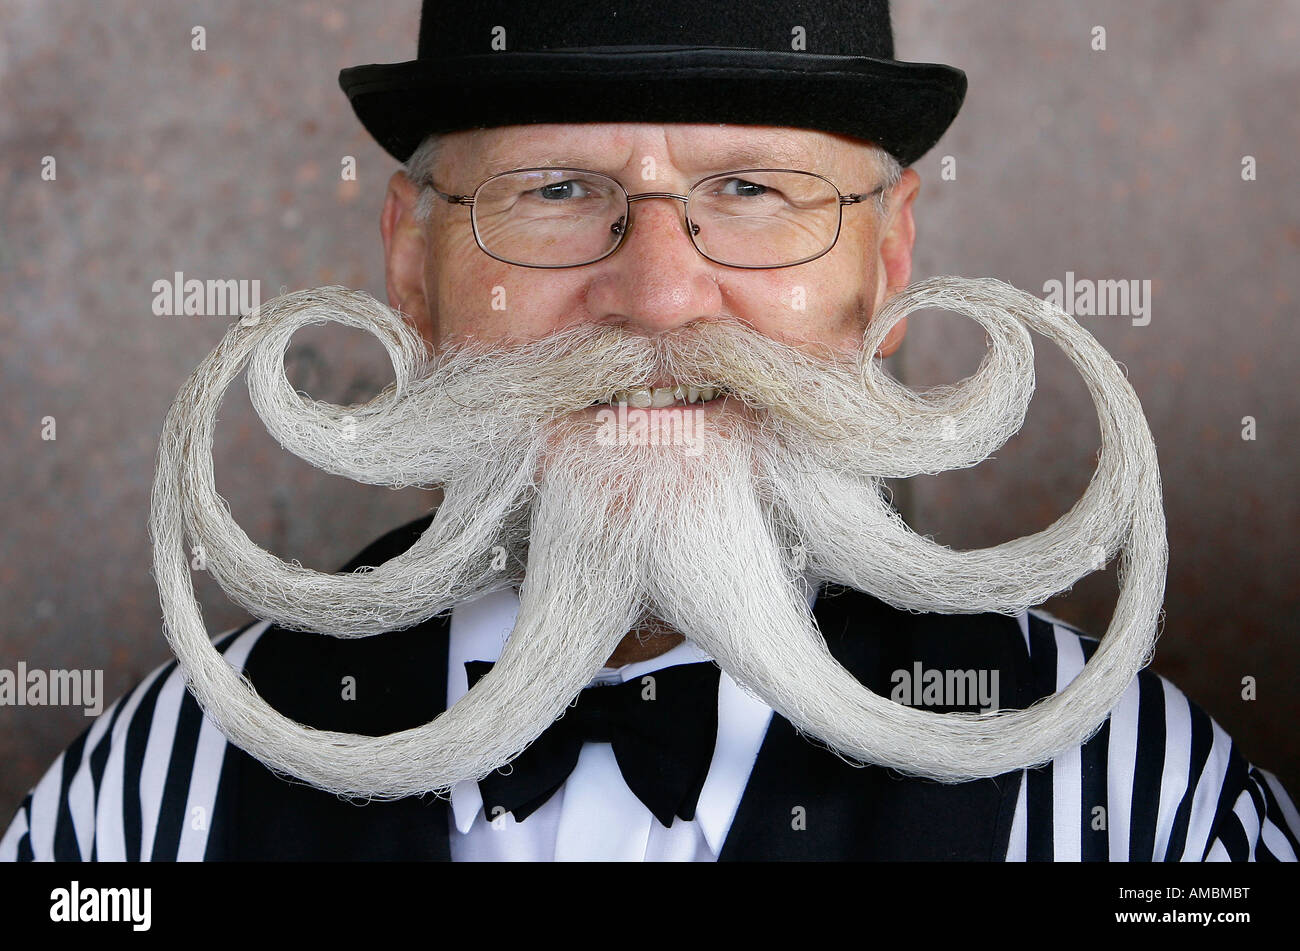 A competetitor at the world Beard and Moustache Championships in Brighton England Picture by James Boardman October - Stock Image